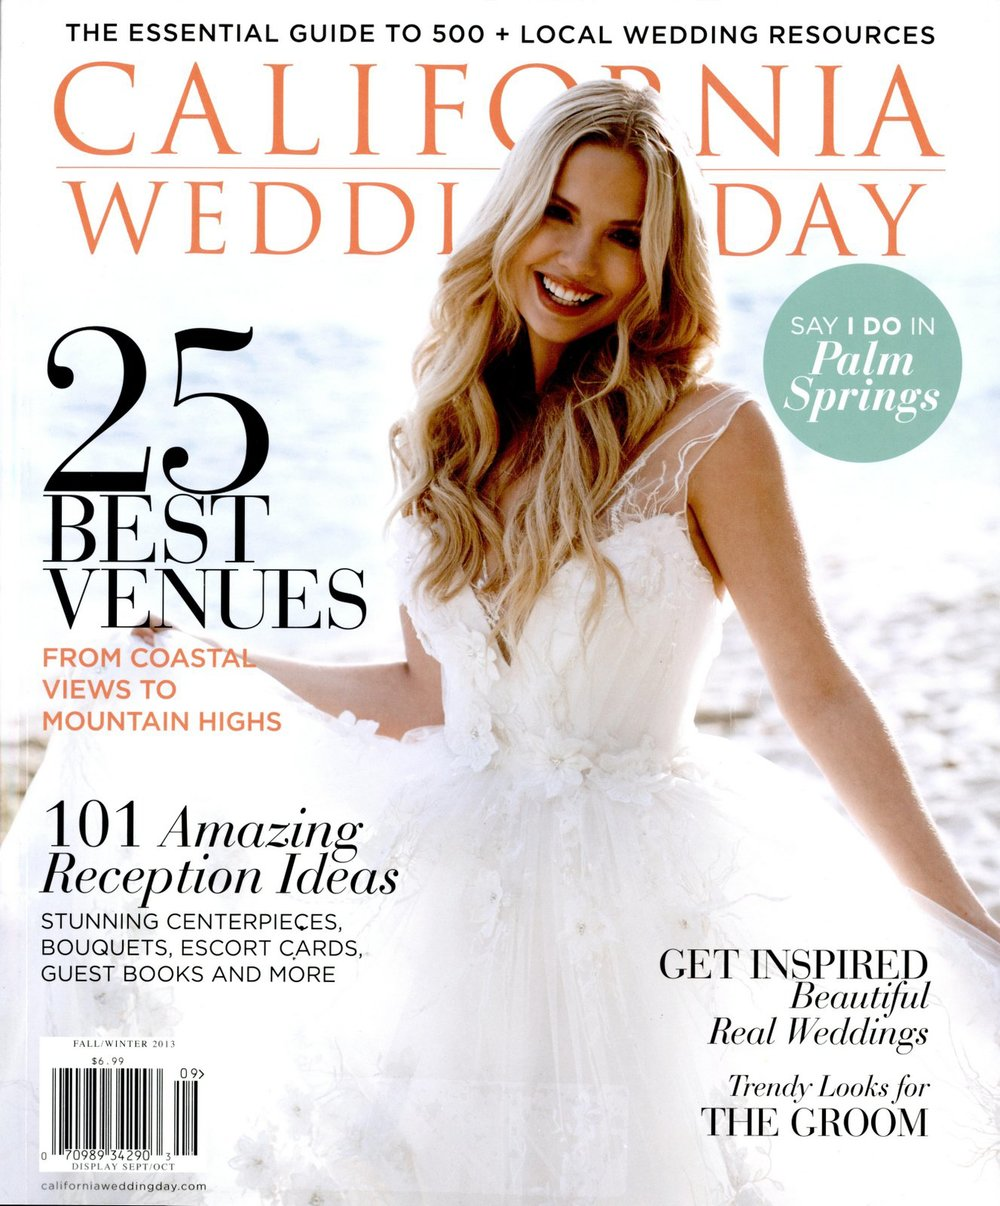 CaliWeddingDayCover_Haute List_Fall2013.jpg